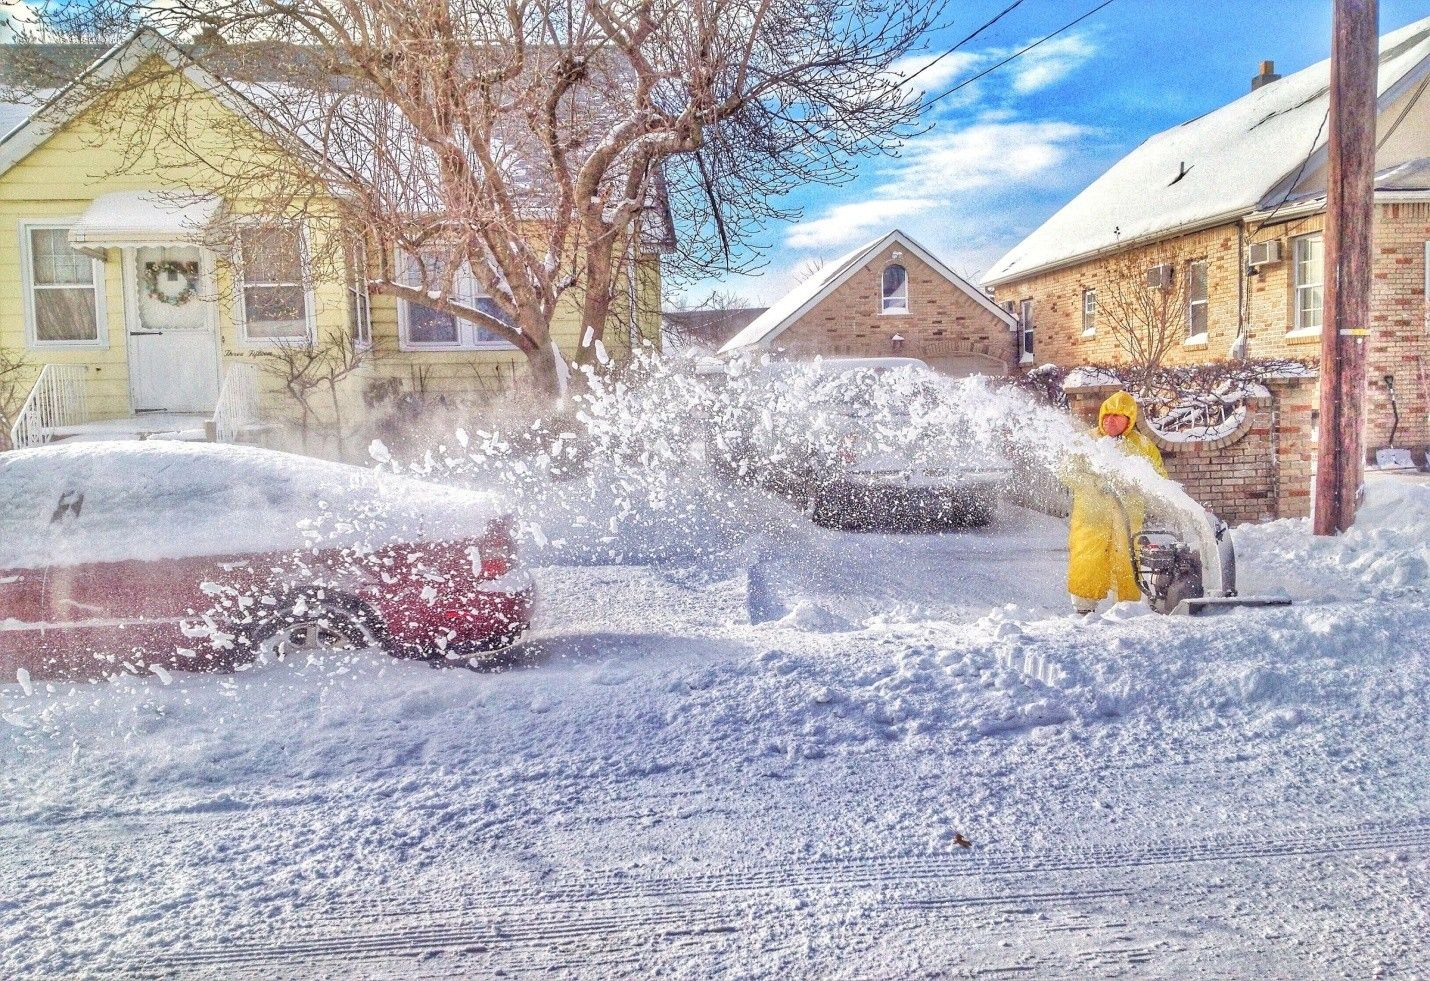 You'll need to prepare yourself for the winter, whether you're expecting little or lots of snow. While snow is undoubtedly unavoidable, there are ways to get rid of it. If you're dreading the coming winter season and its accompanying snow, somesnow removal equipmentand attachments can make this necessary winter chore a little more bearable.  Read on to learn what equipment and attachments you'll need toremove snow from your sidewalk, driveways, and parking lot.  #snowtime #snowremovalservices